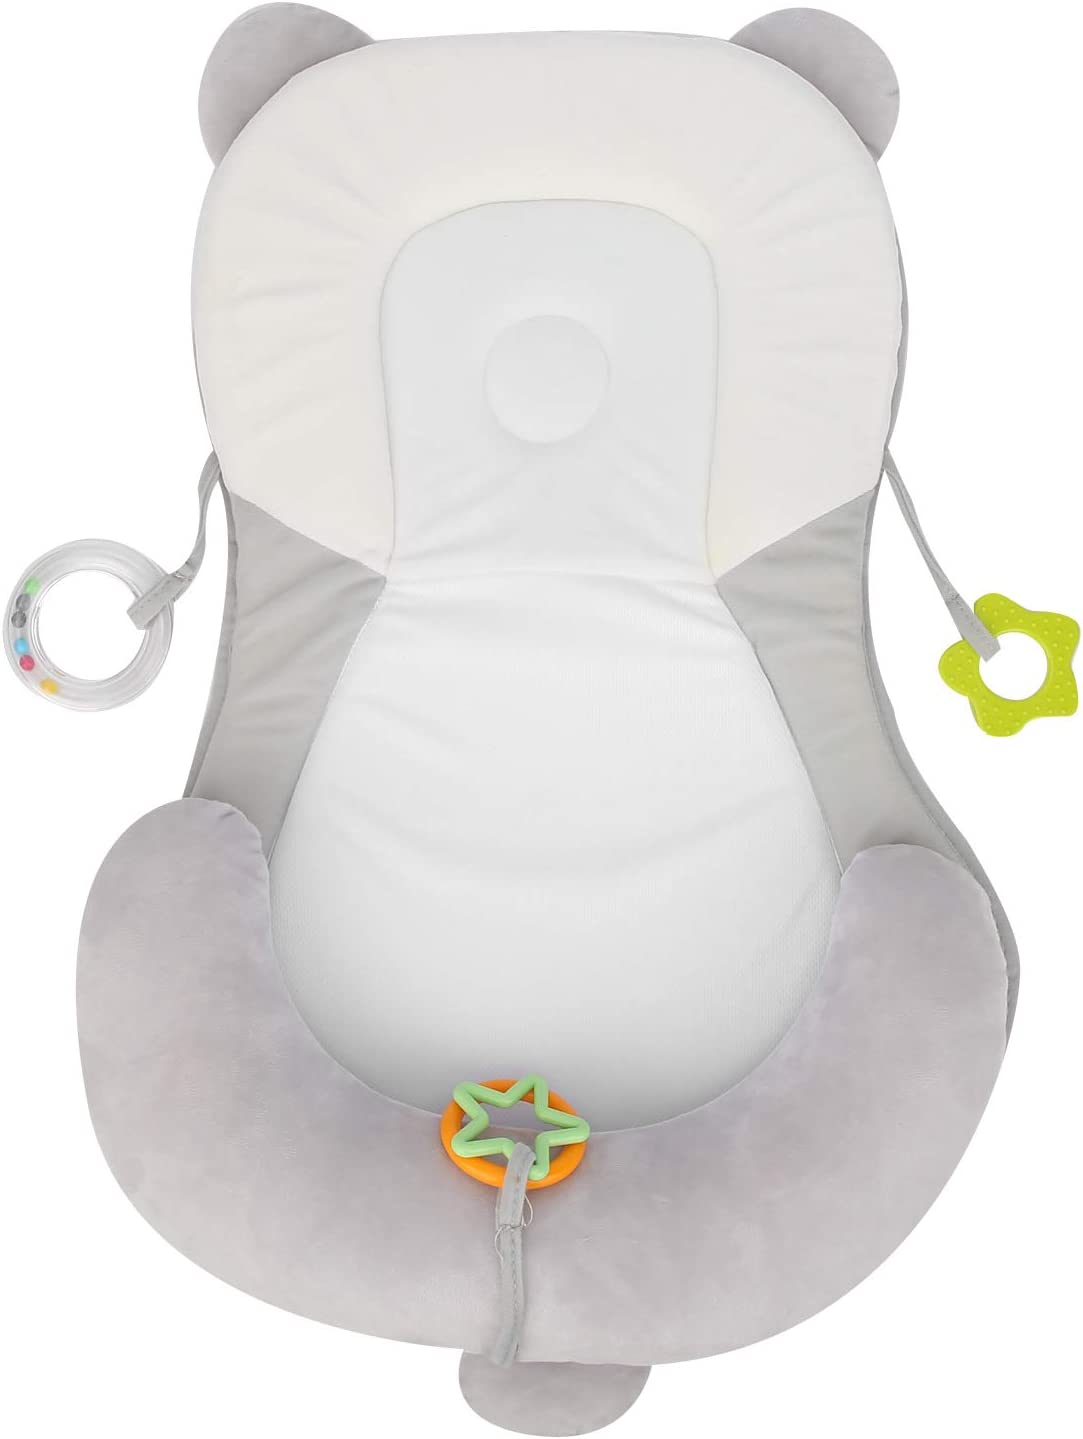 Fockety Complete Finally popular brand Free Shipping Baby Body Support Pillow Health. Portable Head Sup